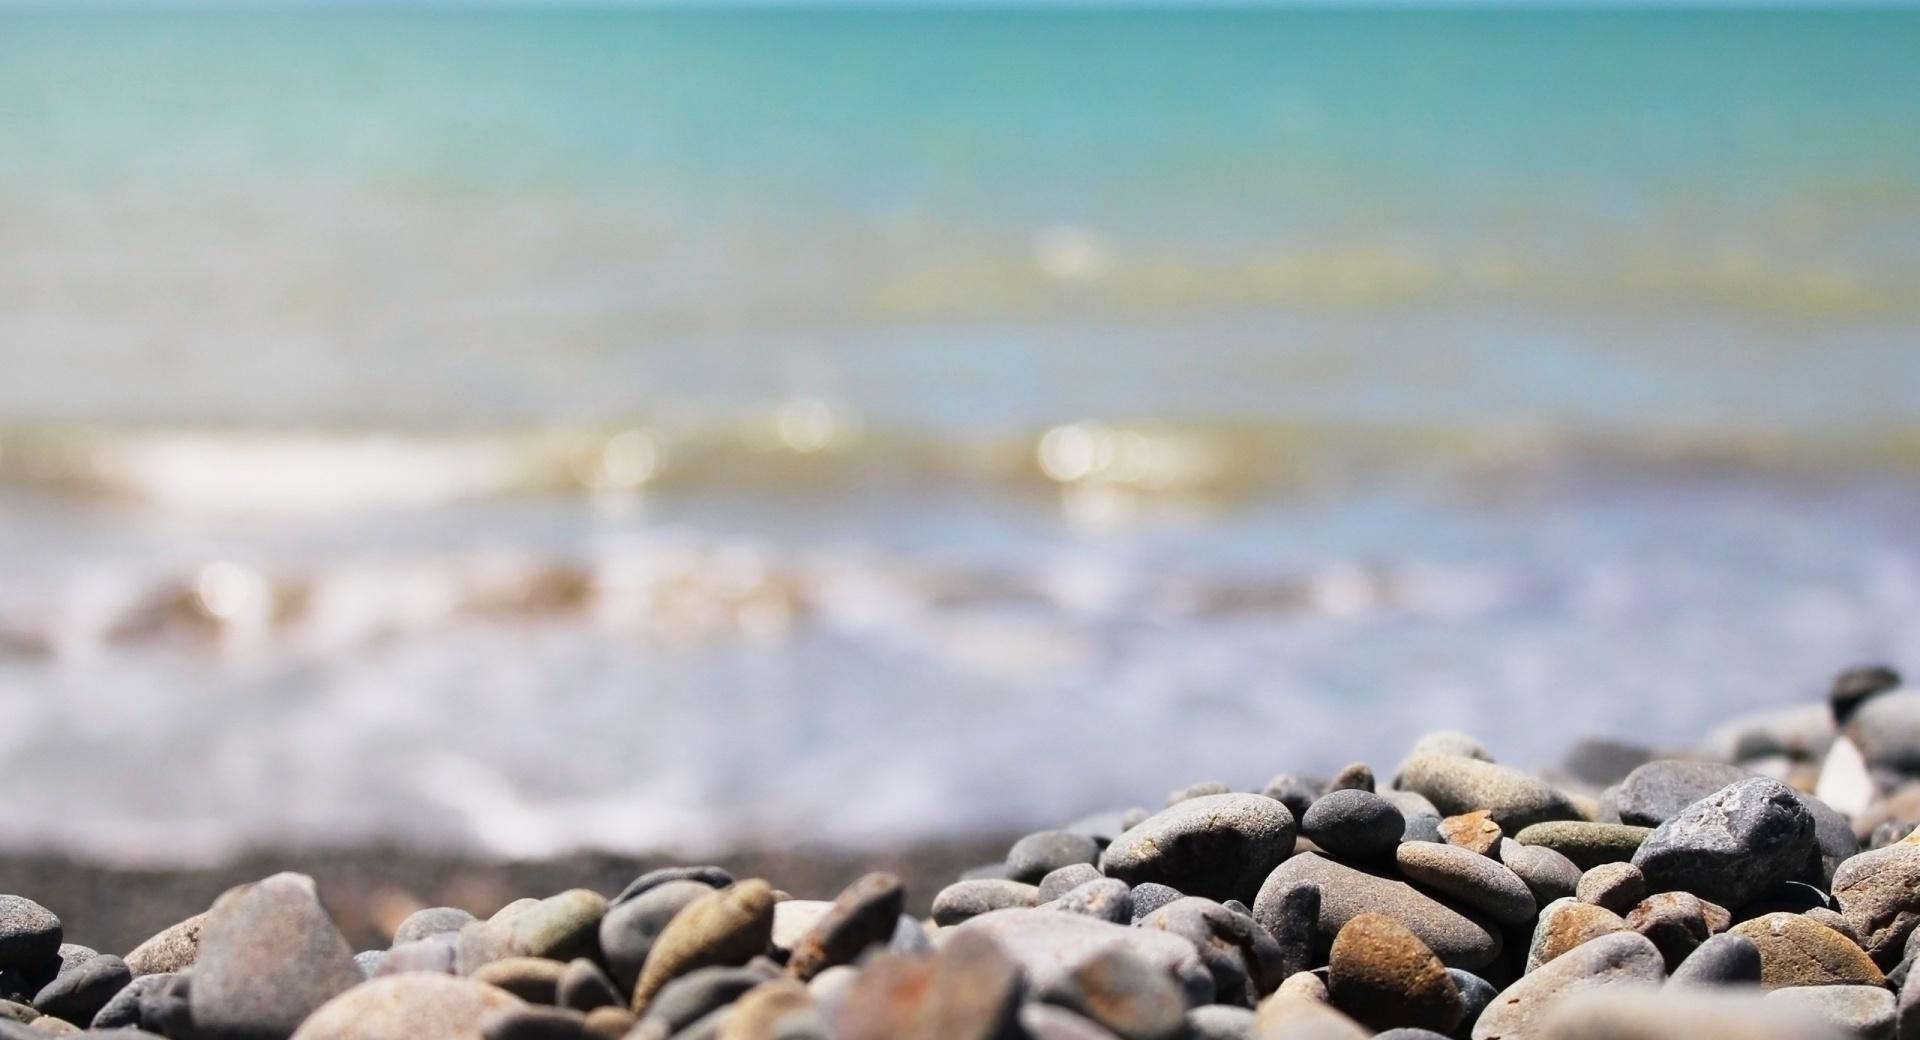 Gravel On A Beach wallpapers HD quality